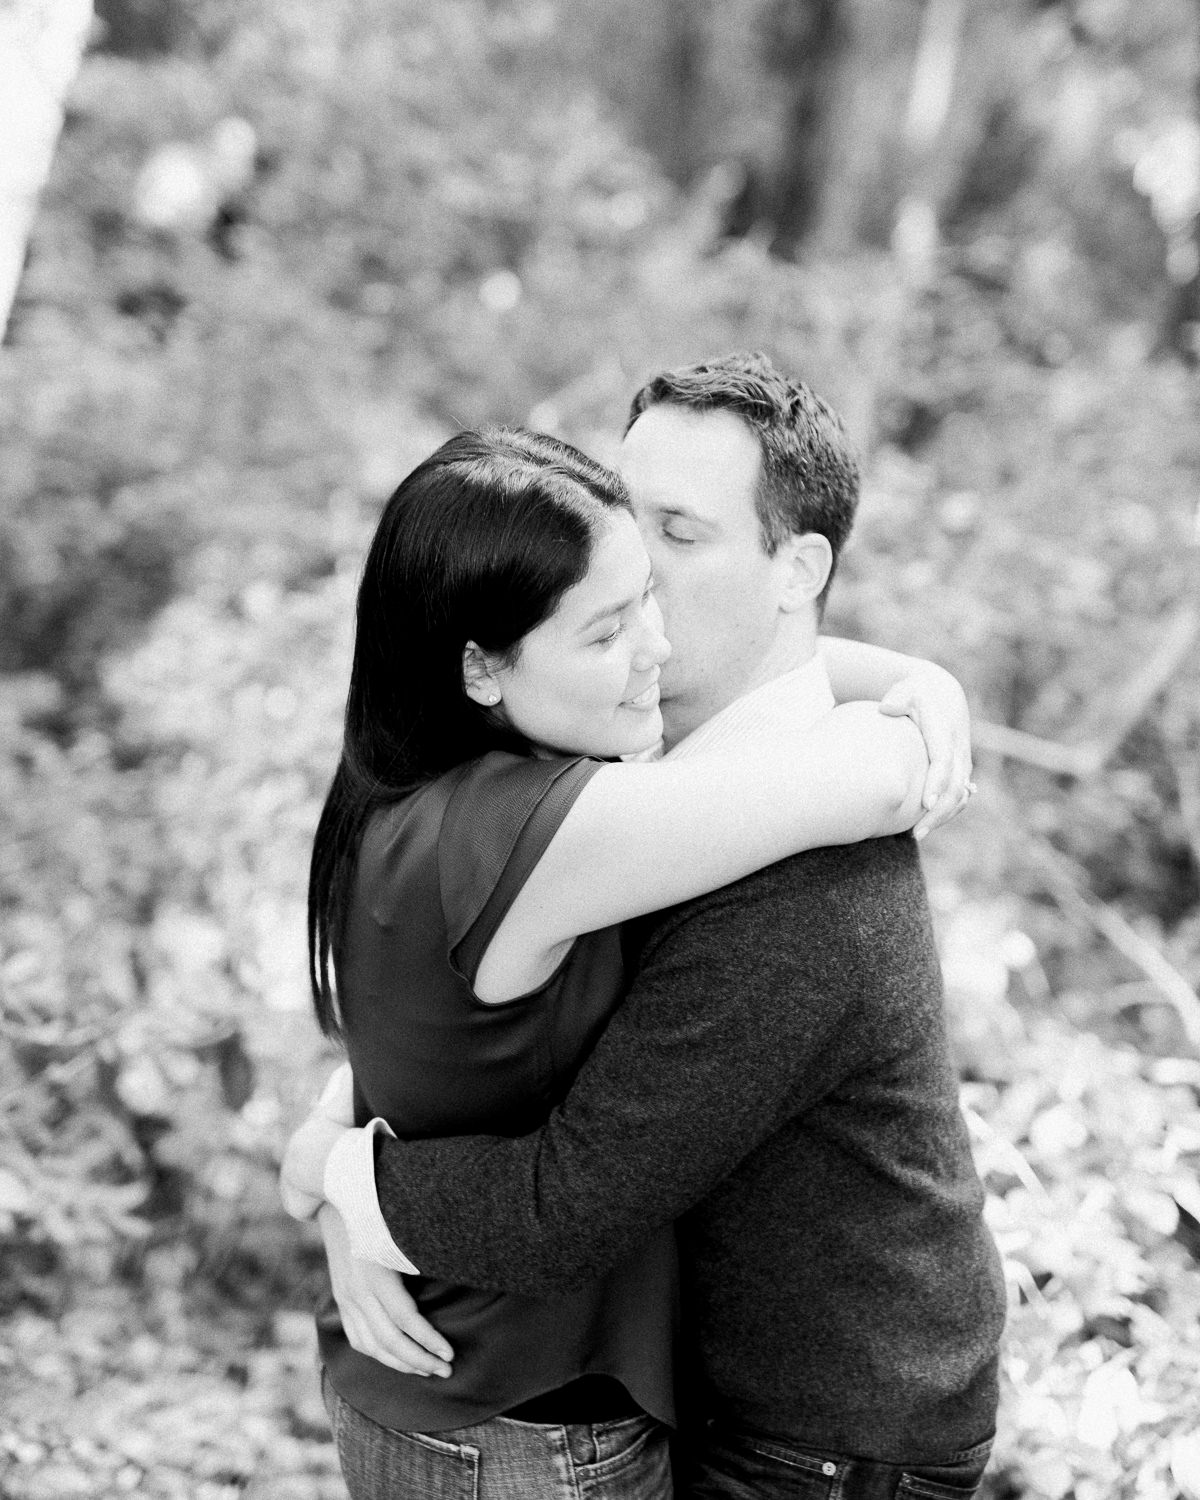 BIg Basin Redwoods State Park Engagement Session 021.jpg